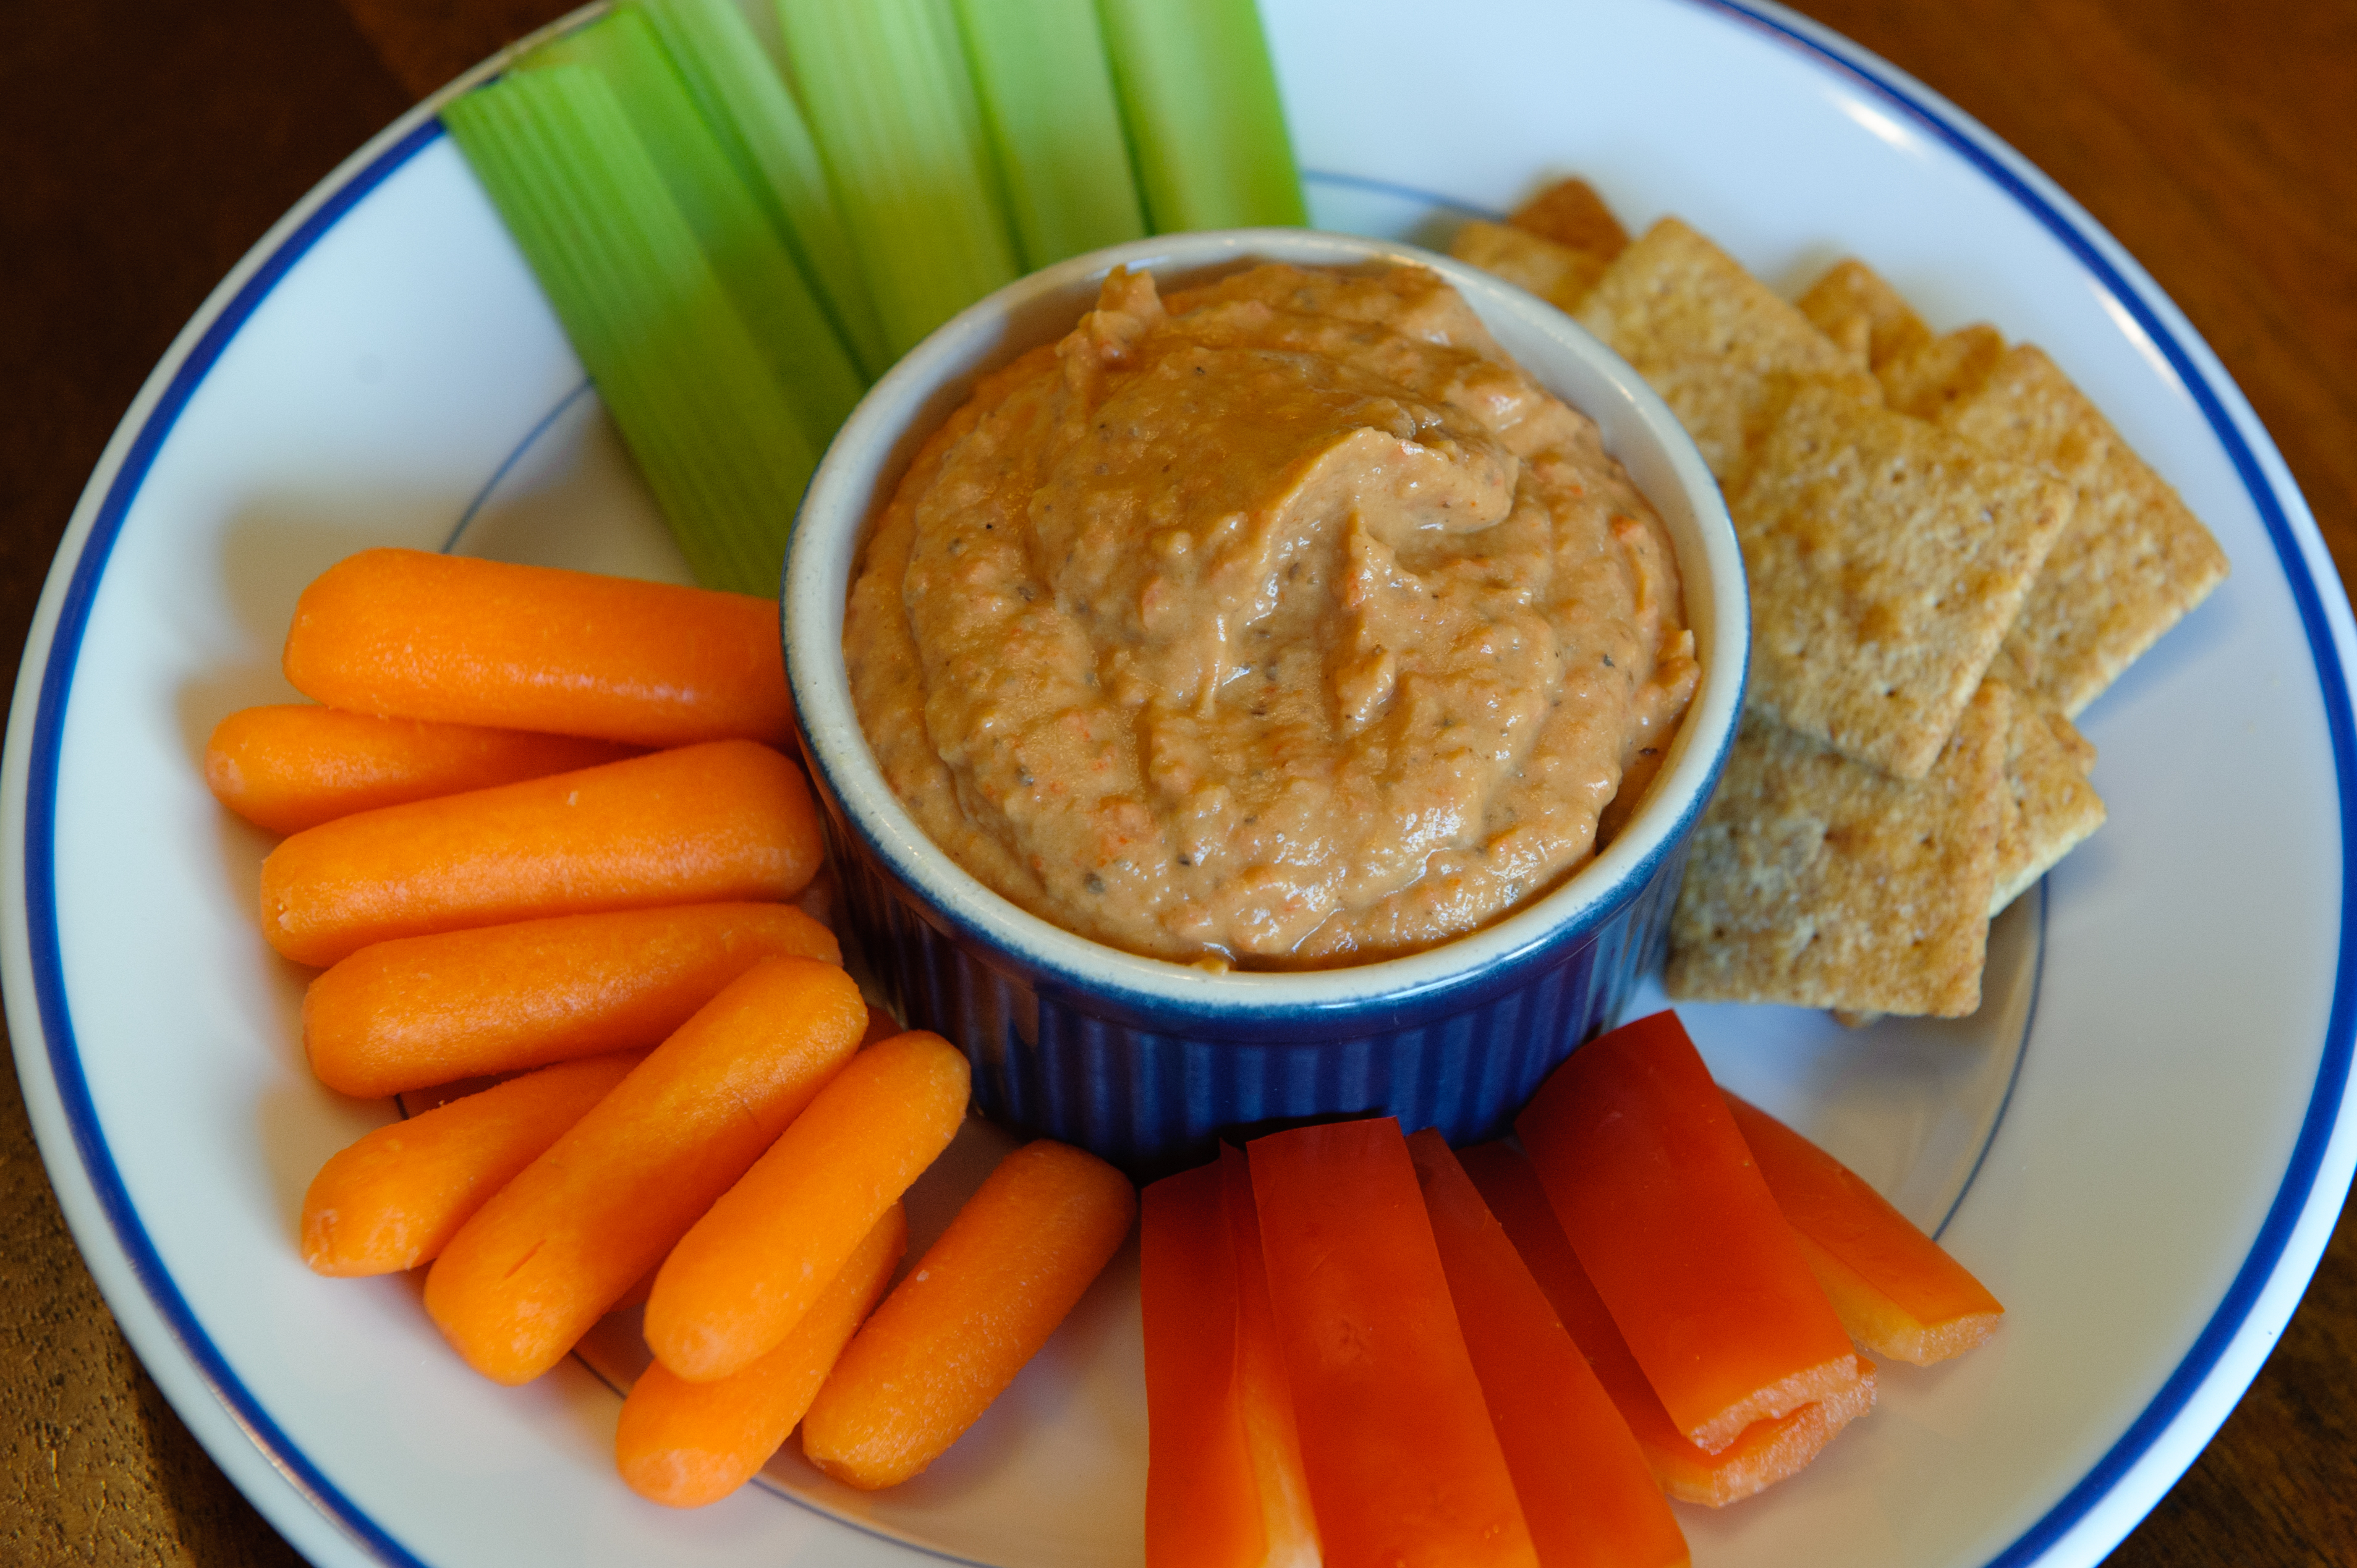 At Home with GCH: Eggplant Dip (Baba Ghanouj) - Girlfriends Coffee ...